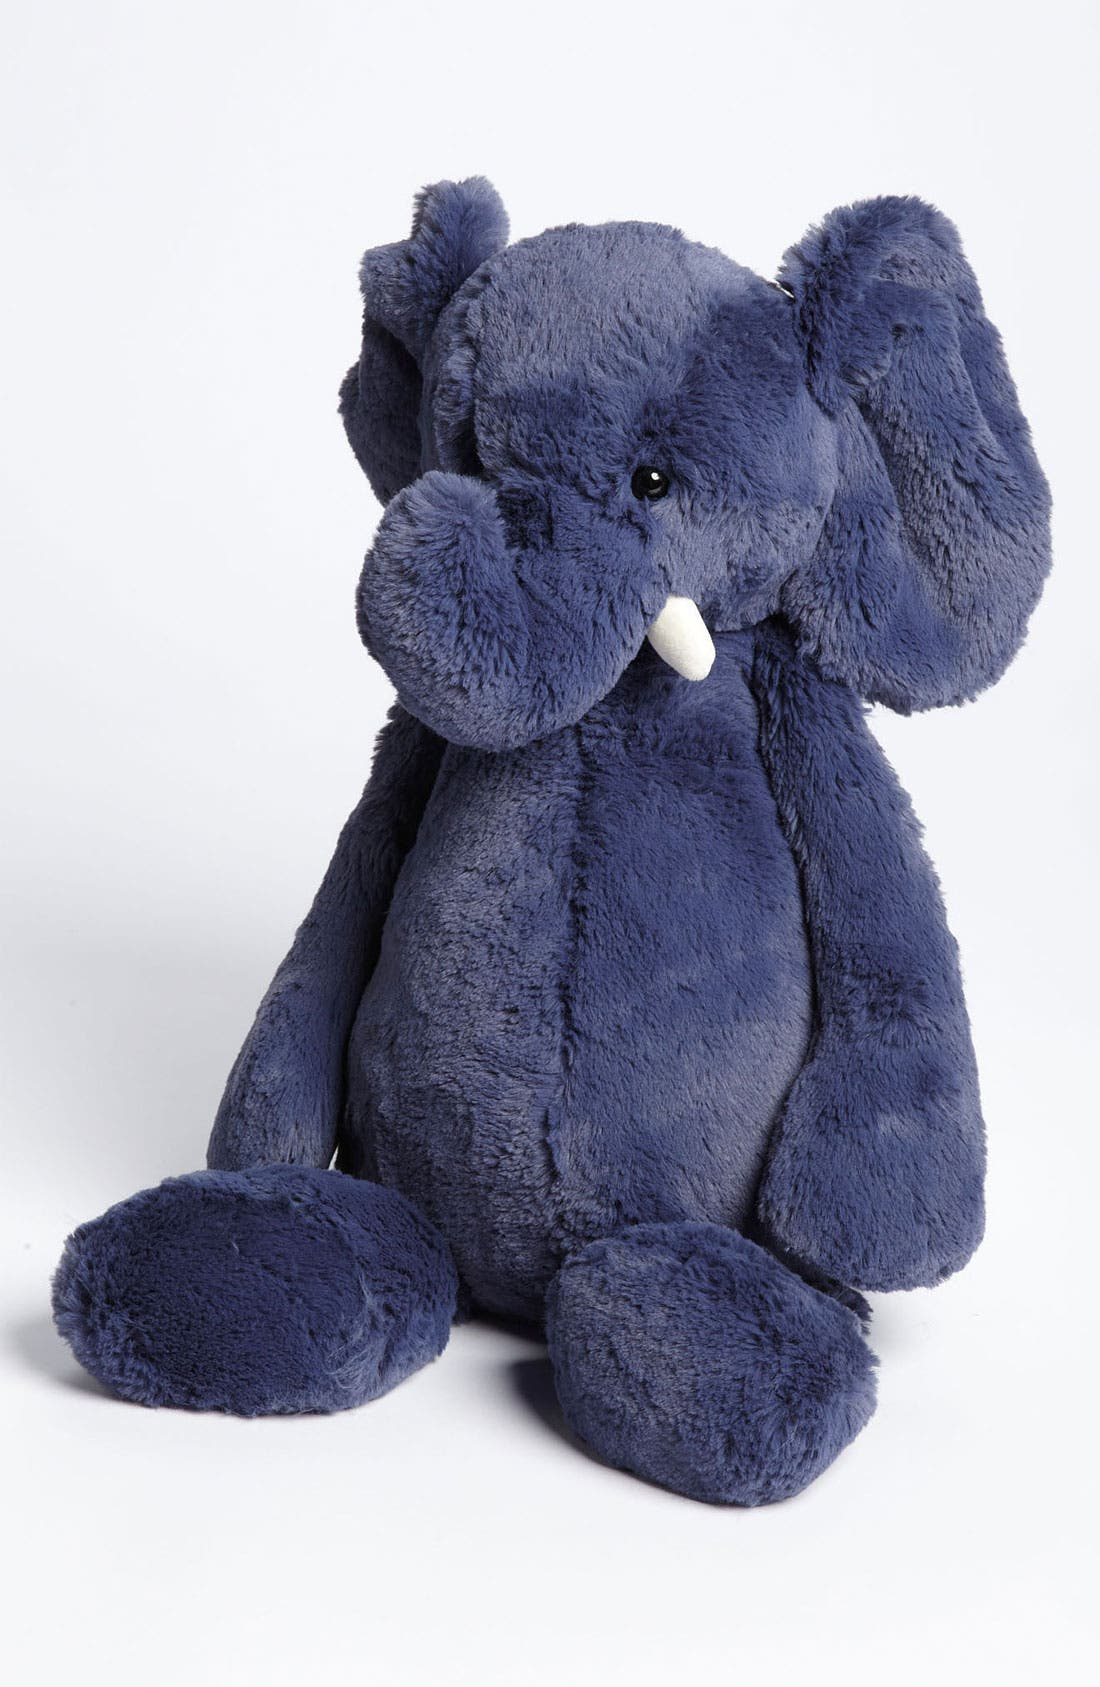 Alternate Image 1 Selected - Jellycat 'Bashful Elephant' Stuffed Animal